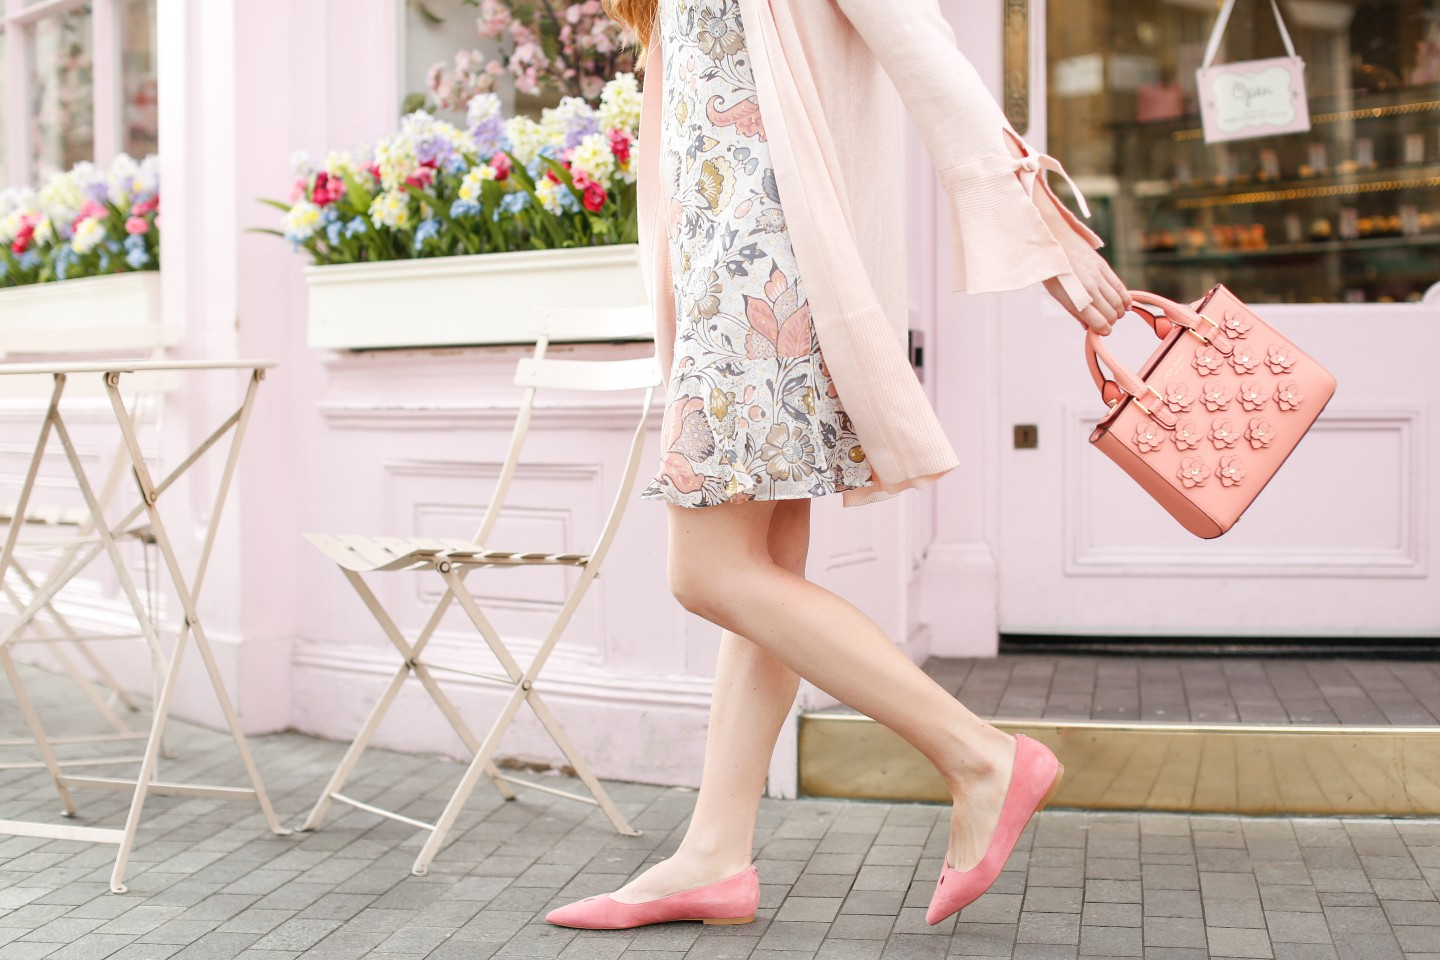 Lifestyle blogger Mollie Sheperdson shares her favorite spring pieces from LOFT